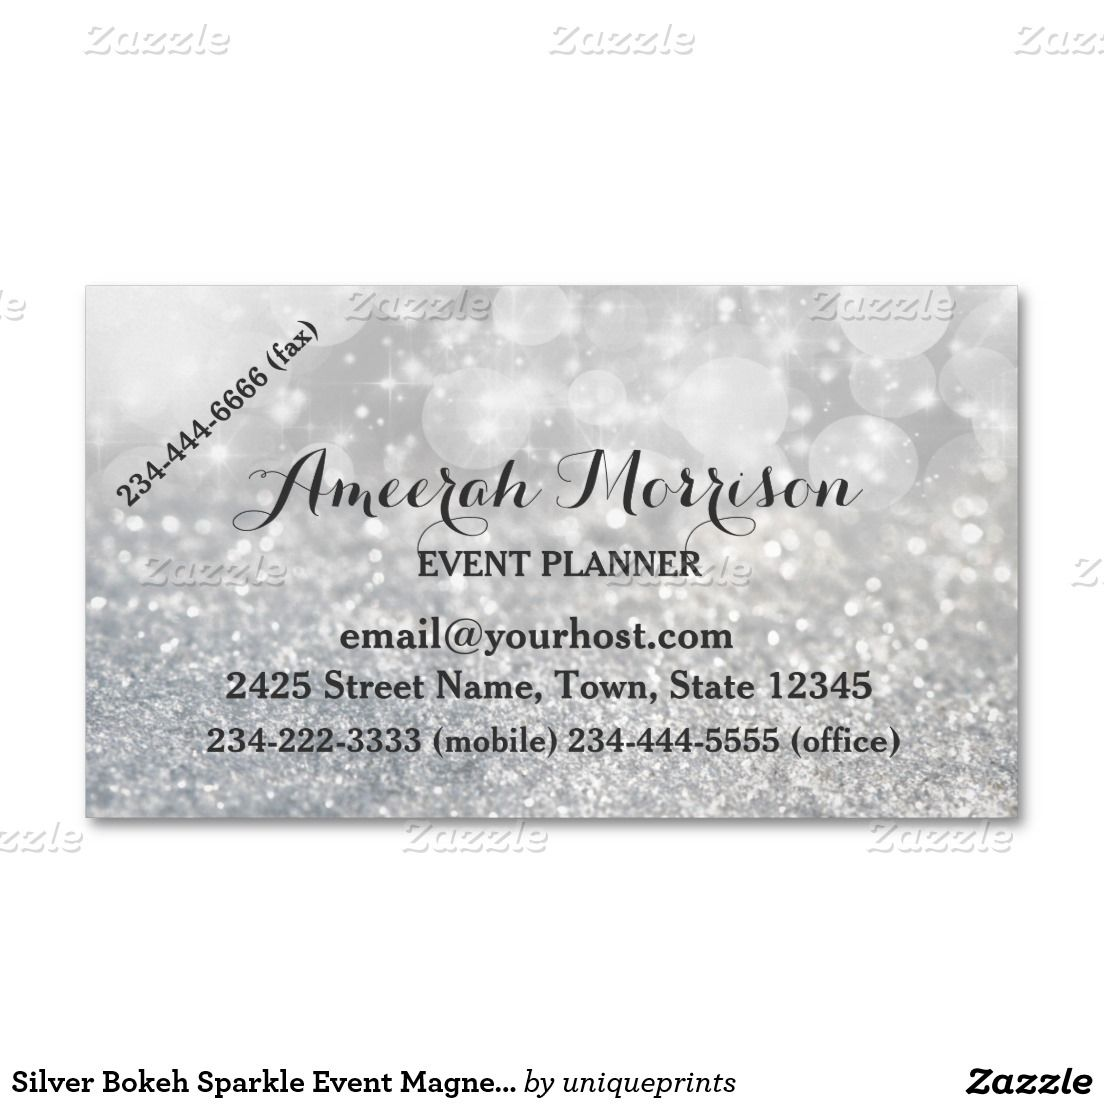 Silver bokeh sparkle event magnetic business card pinterest silver bokeh sparkle event magnetic business card magnetic business cards stopboris Image collections